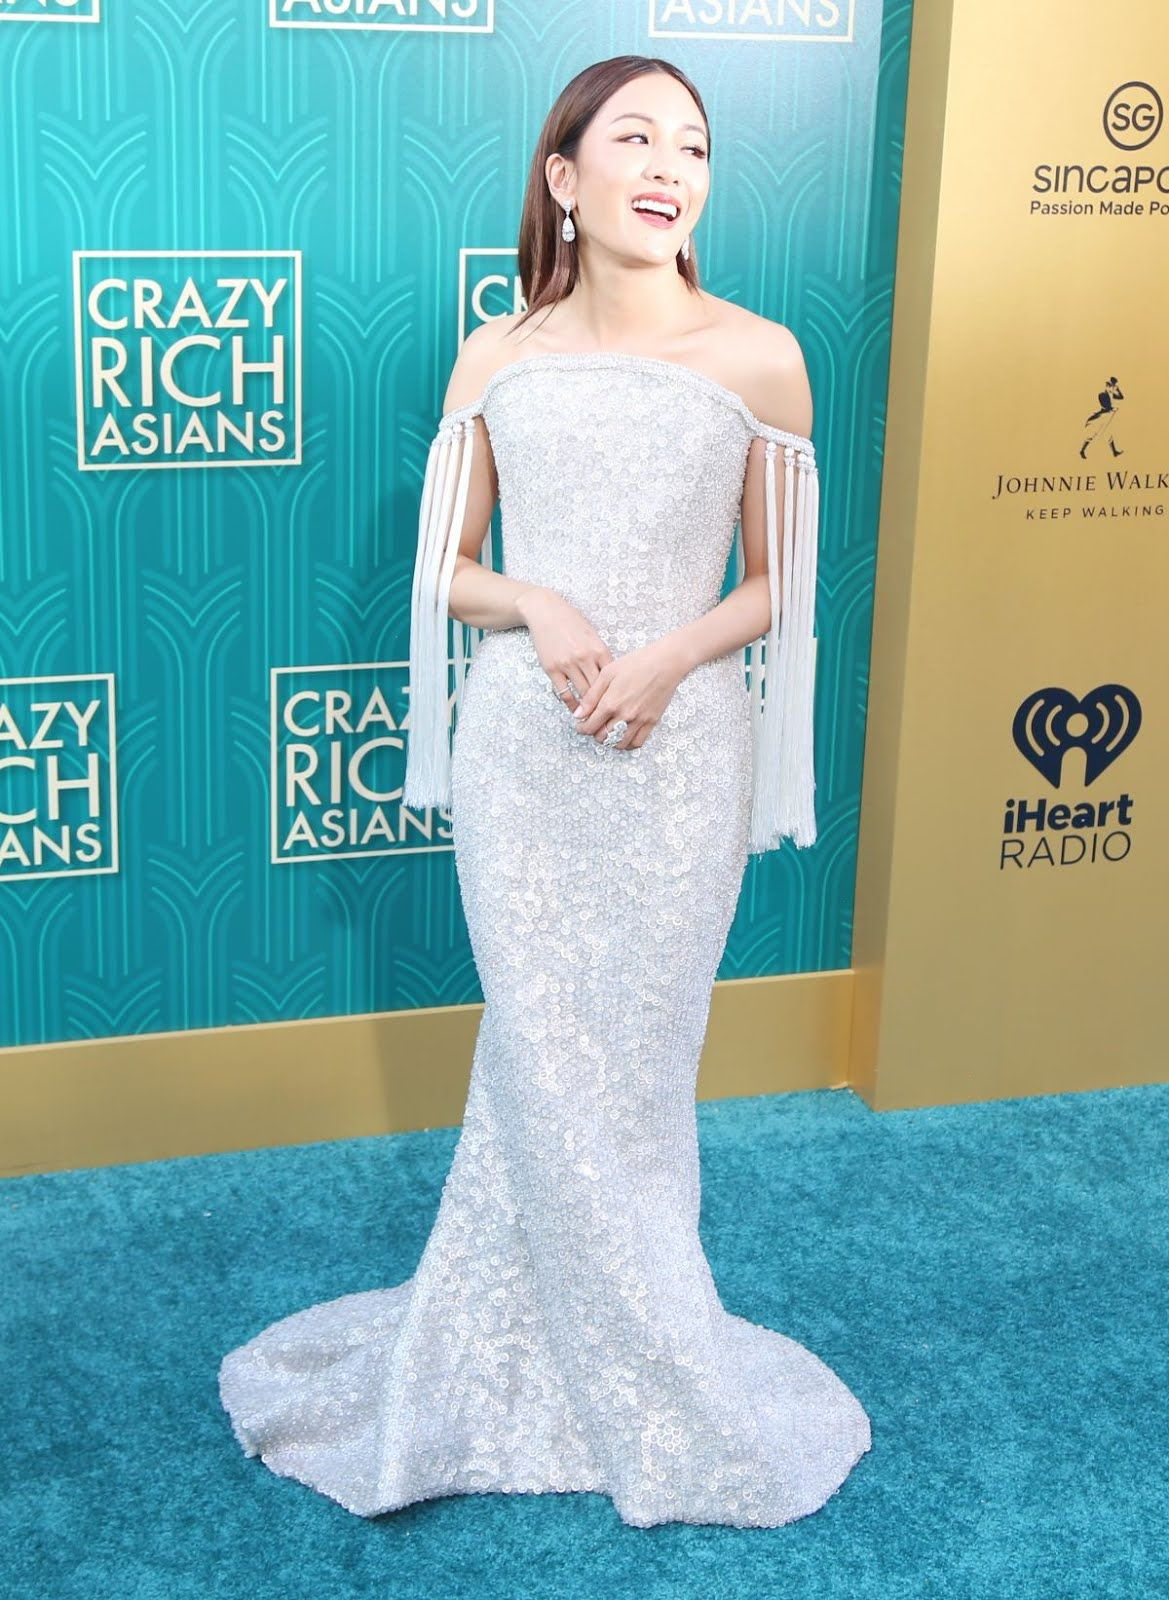 Fashion with Trend | Nice dresses, Constance wu, Celebrity